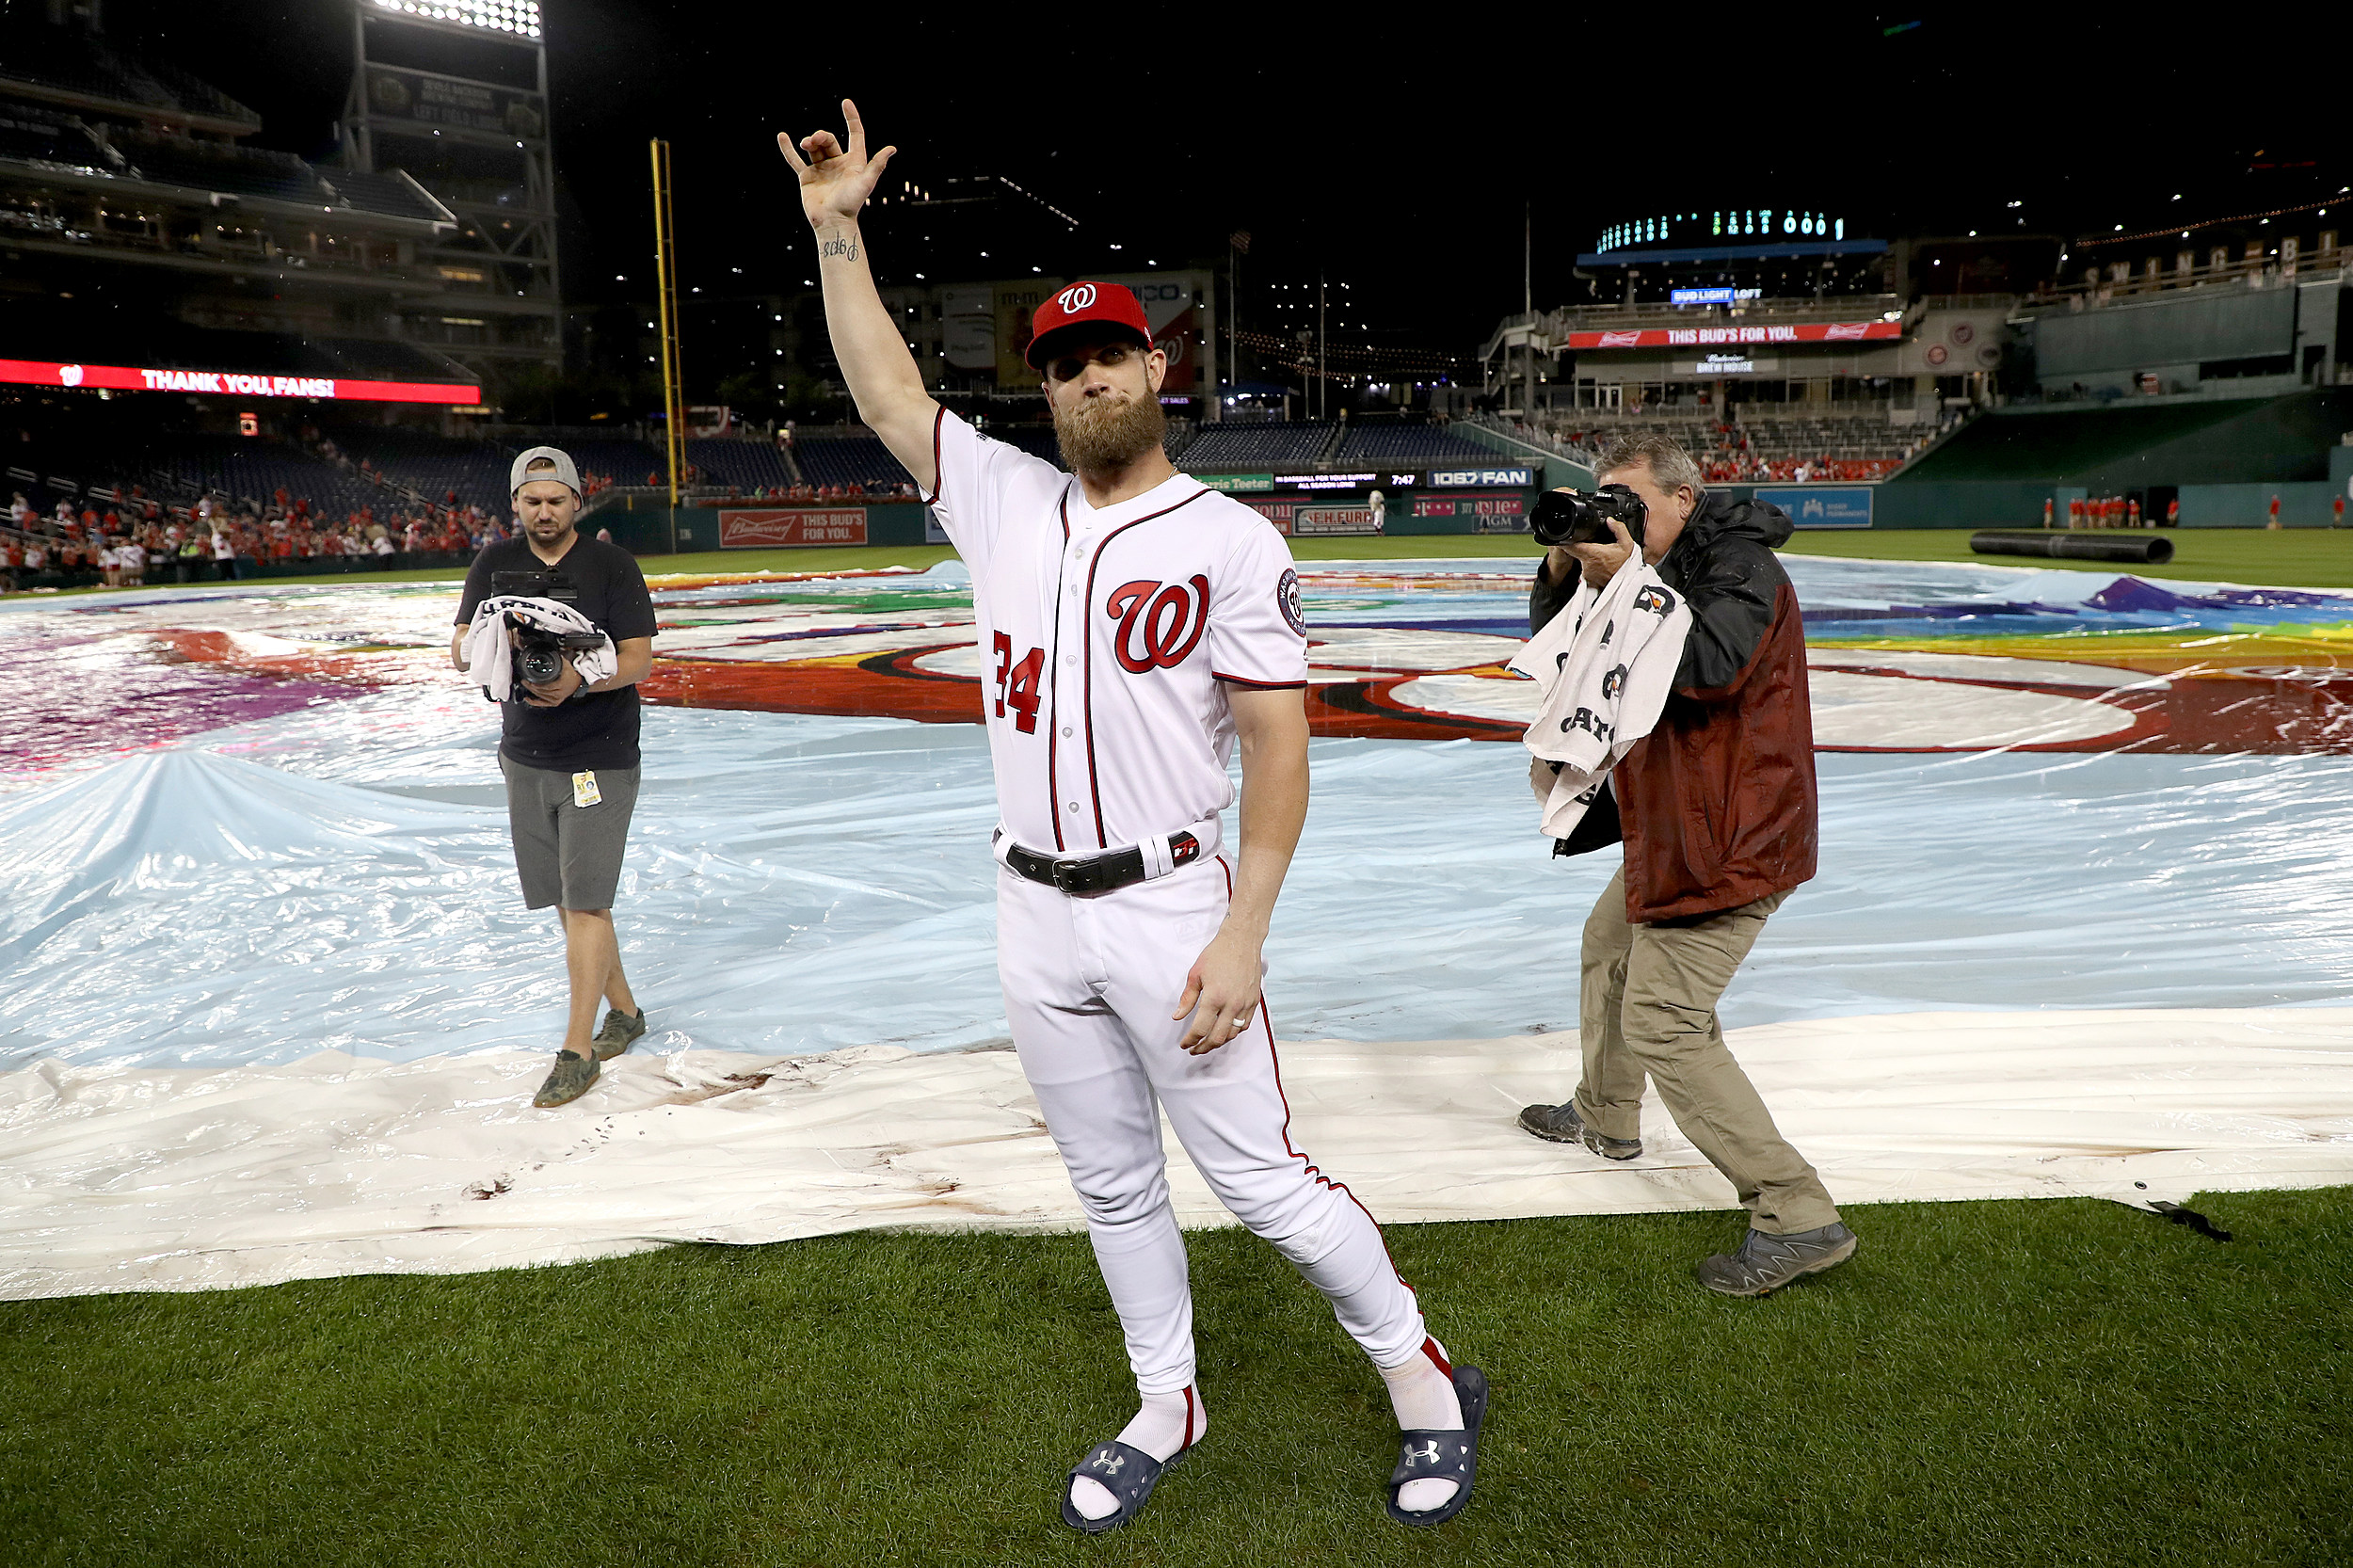 San Francisco Giants expected to meet with Bryce Harper this week